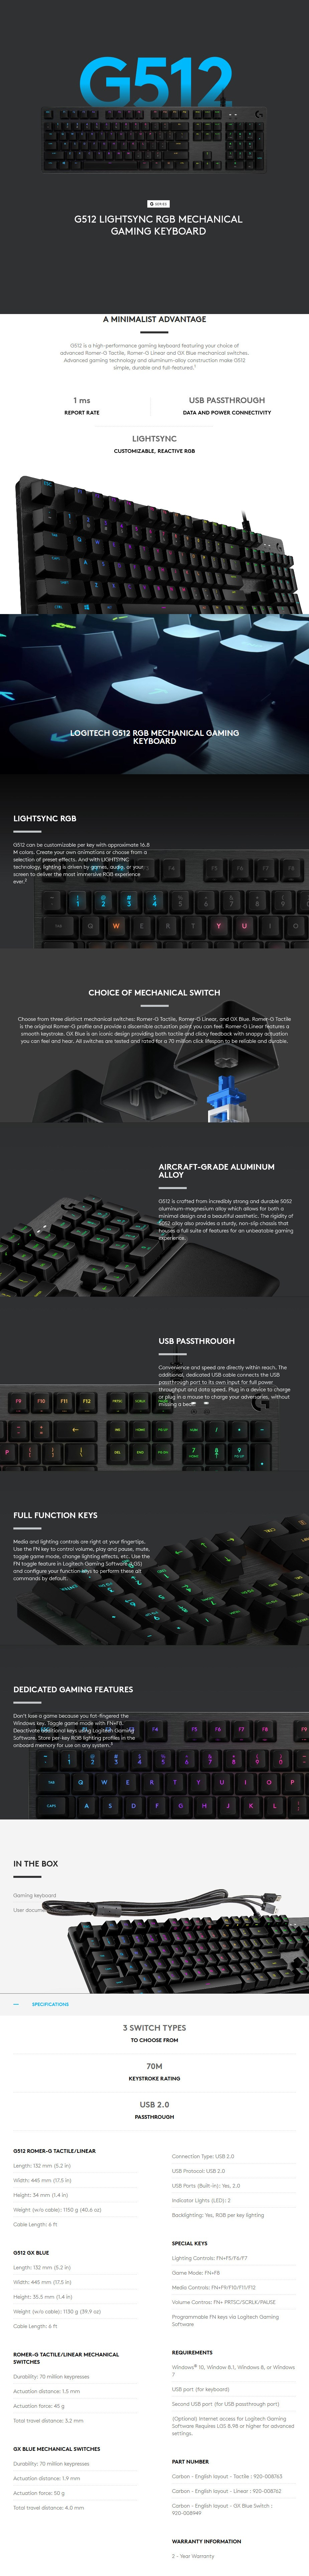 Logitech G512 Carbon RGB Mechanical Gaming Keyboard - GX Blue Switch - Desktop Overview